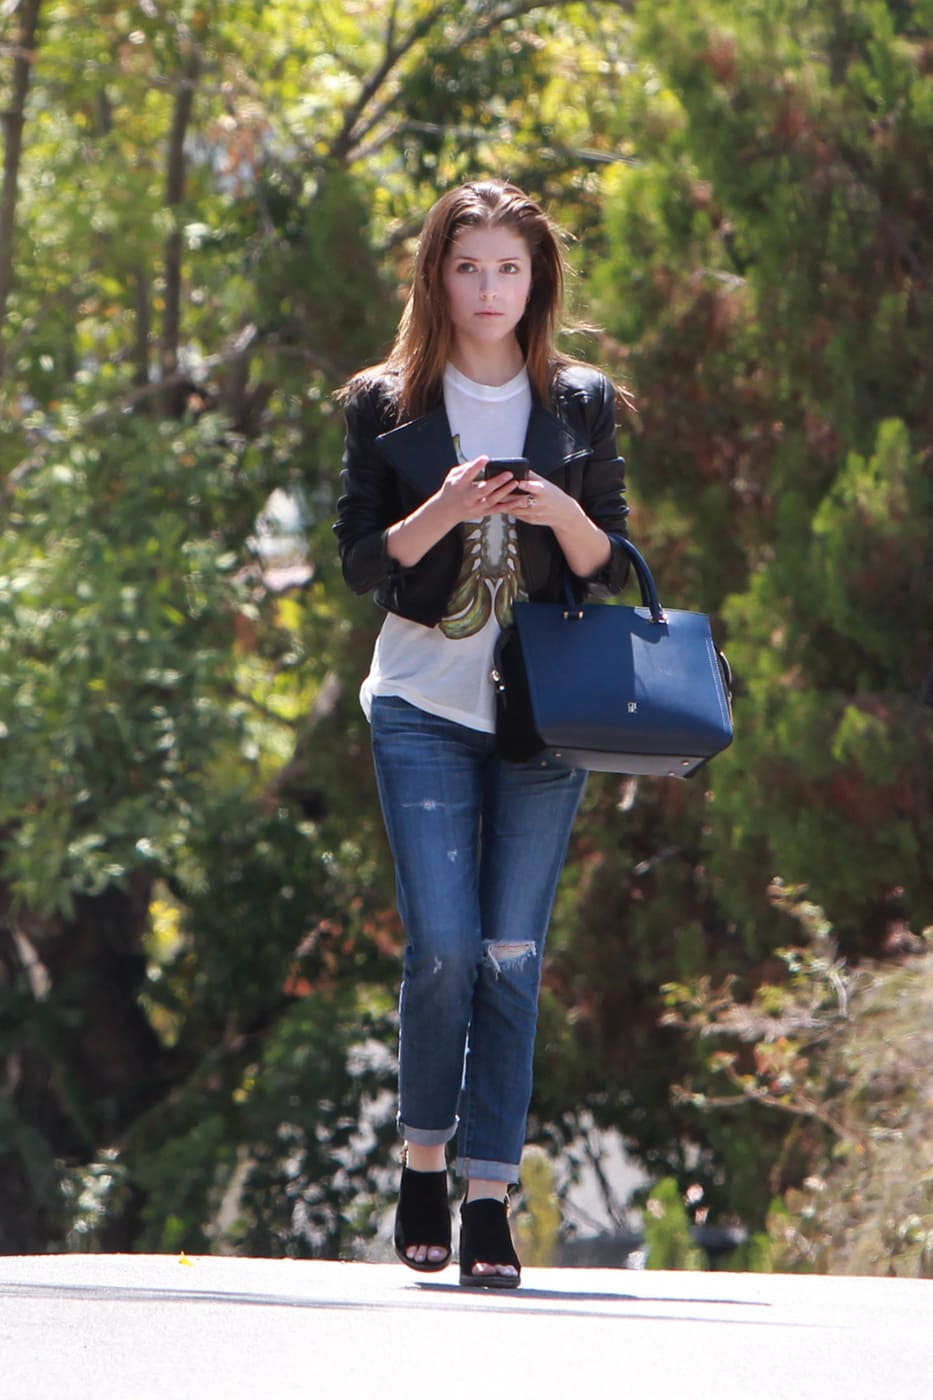 Celebrity fashion: Anna Kendrick wearing cuffed jeans, a cropped moto jacket, a graphic tee, blue purse, and black slip on wedges